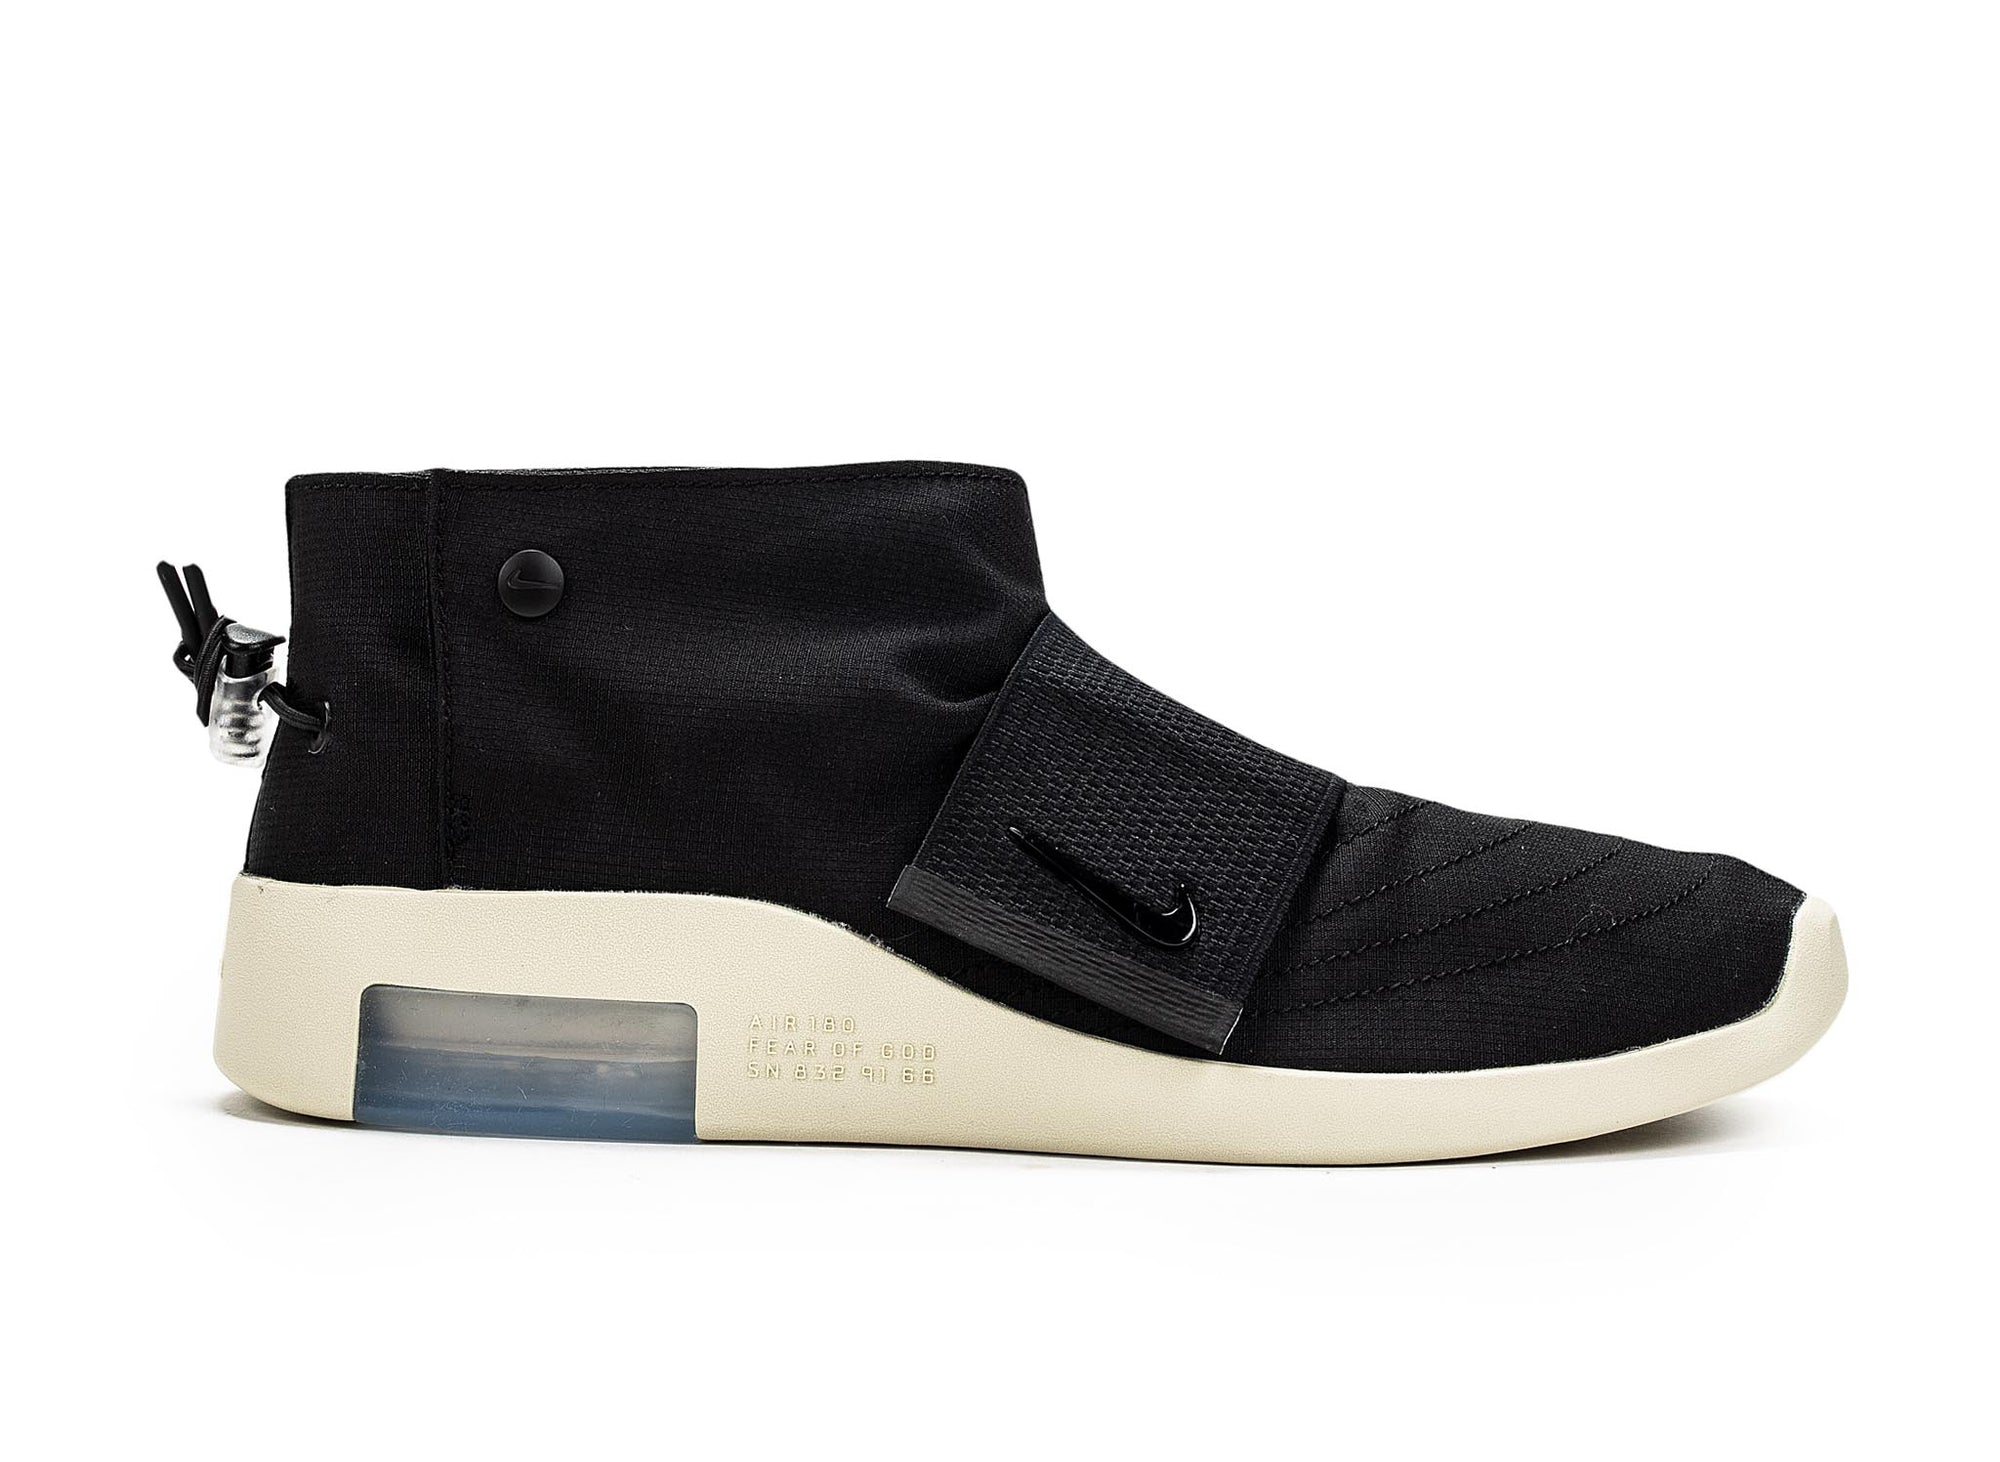 Nike Air x Fear of God Moc 'Black Fossil'